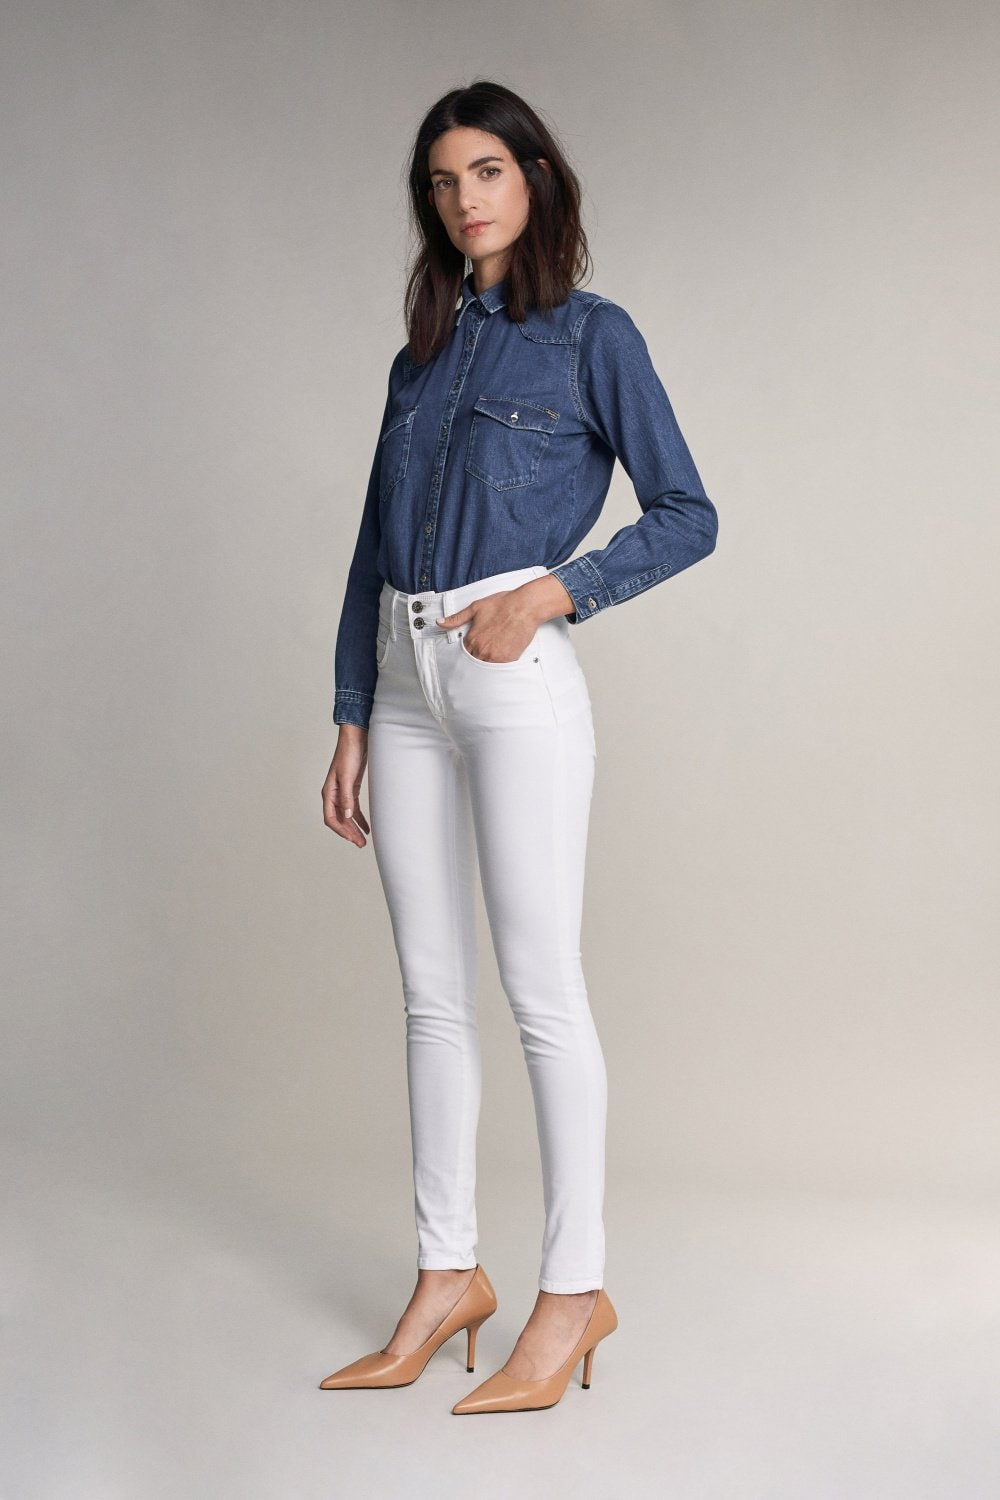 Jeans Secret, Push In, Skinny, farbig - Salsa